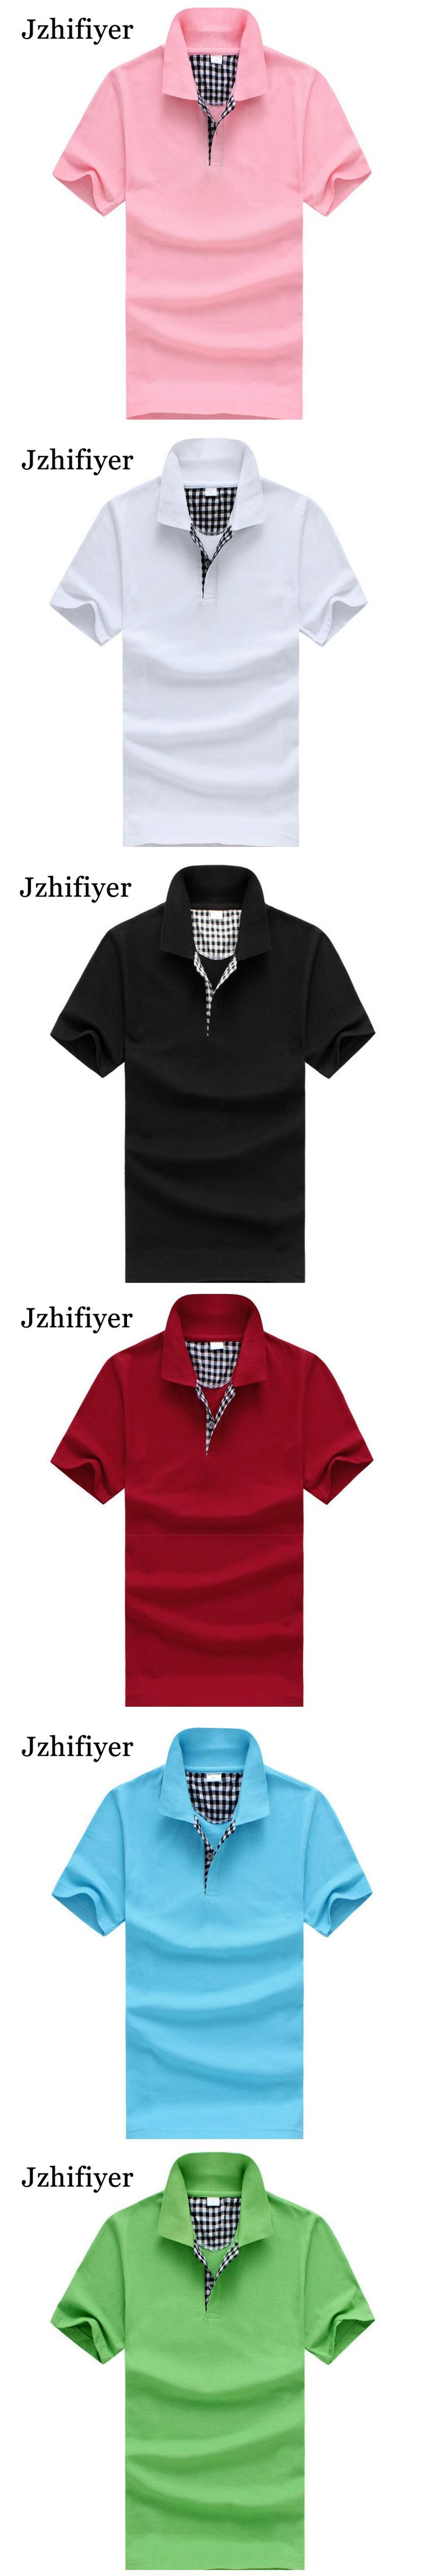 Jzhifiyer plain short-sleeve mens fashion 220g 100% cotton polo shirts camiseta masculina mens business shirt brands casual